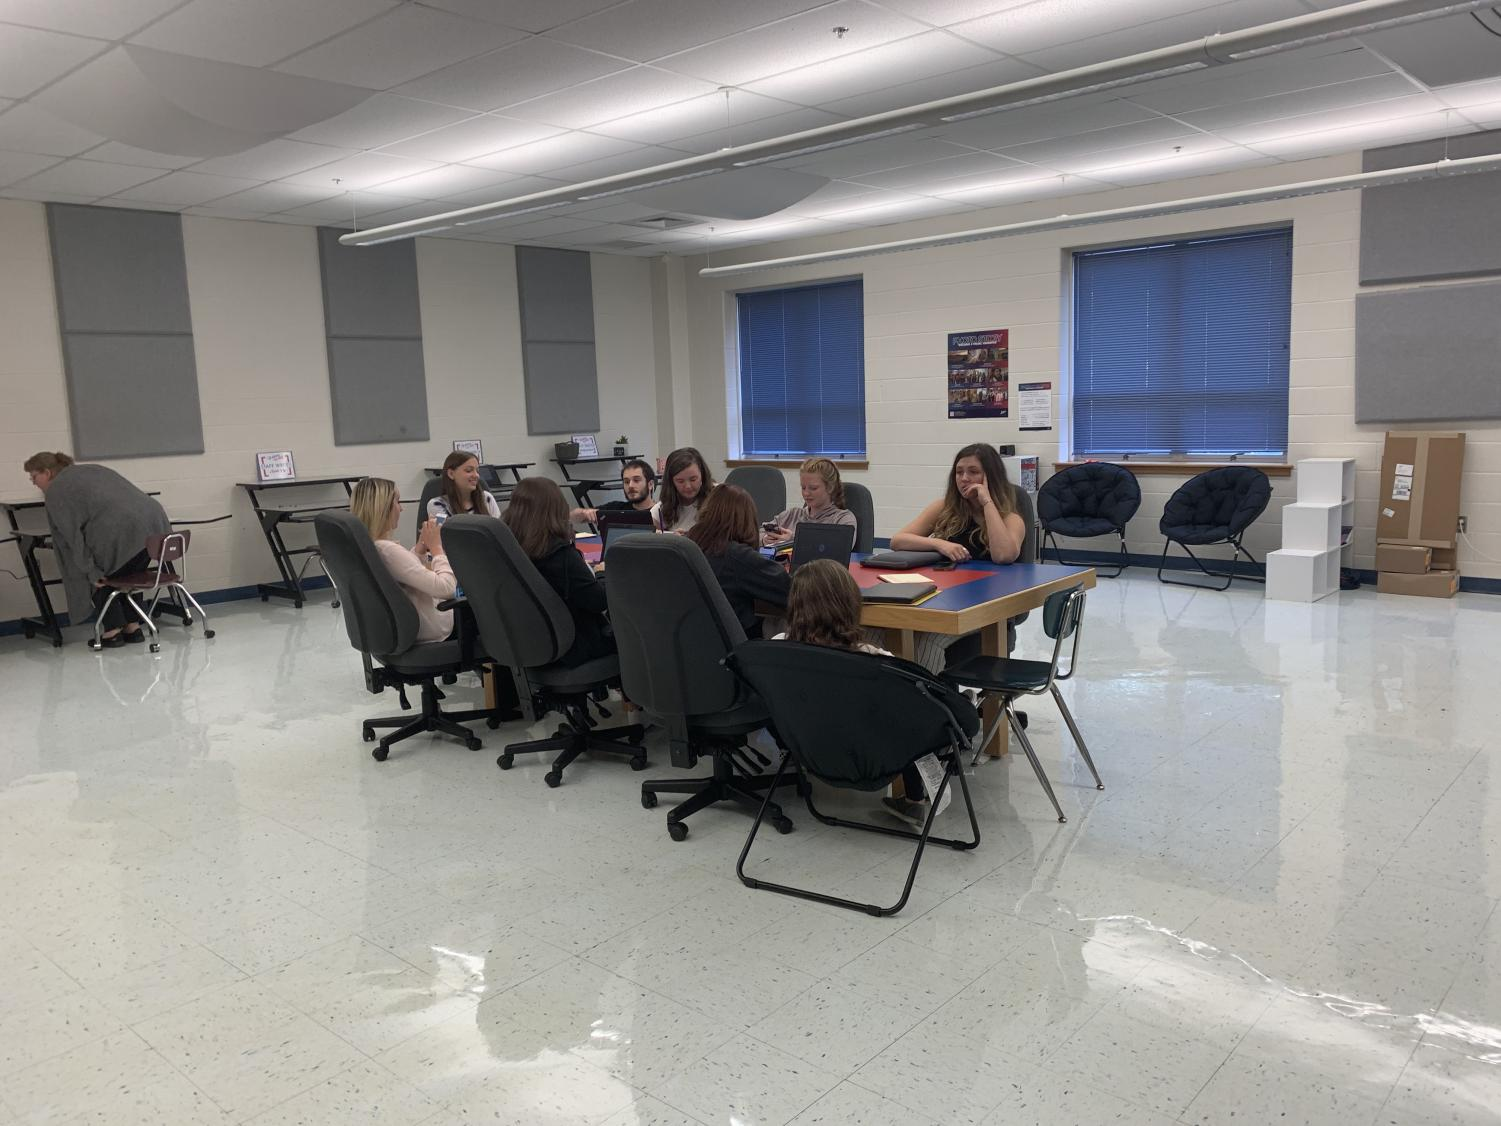 Journalism students discussing their new project in the multi-media room